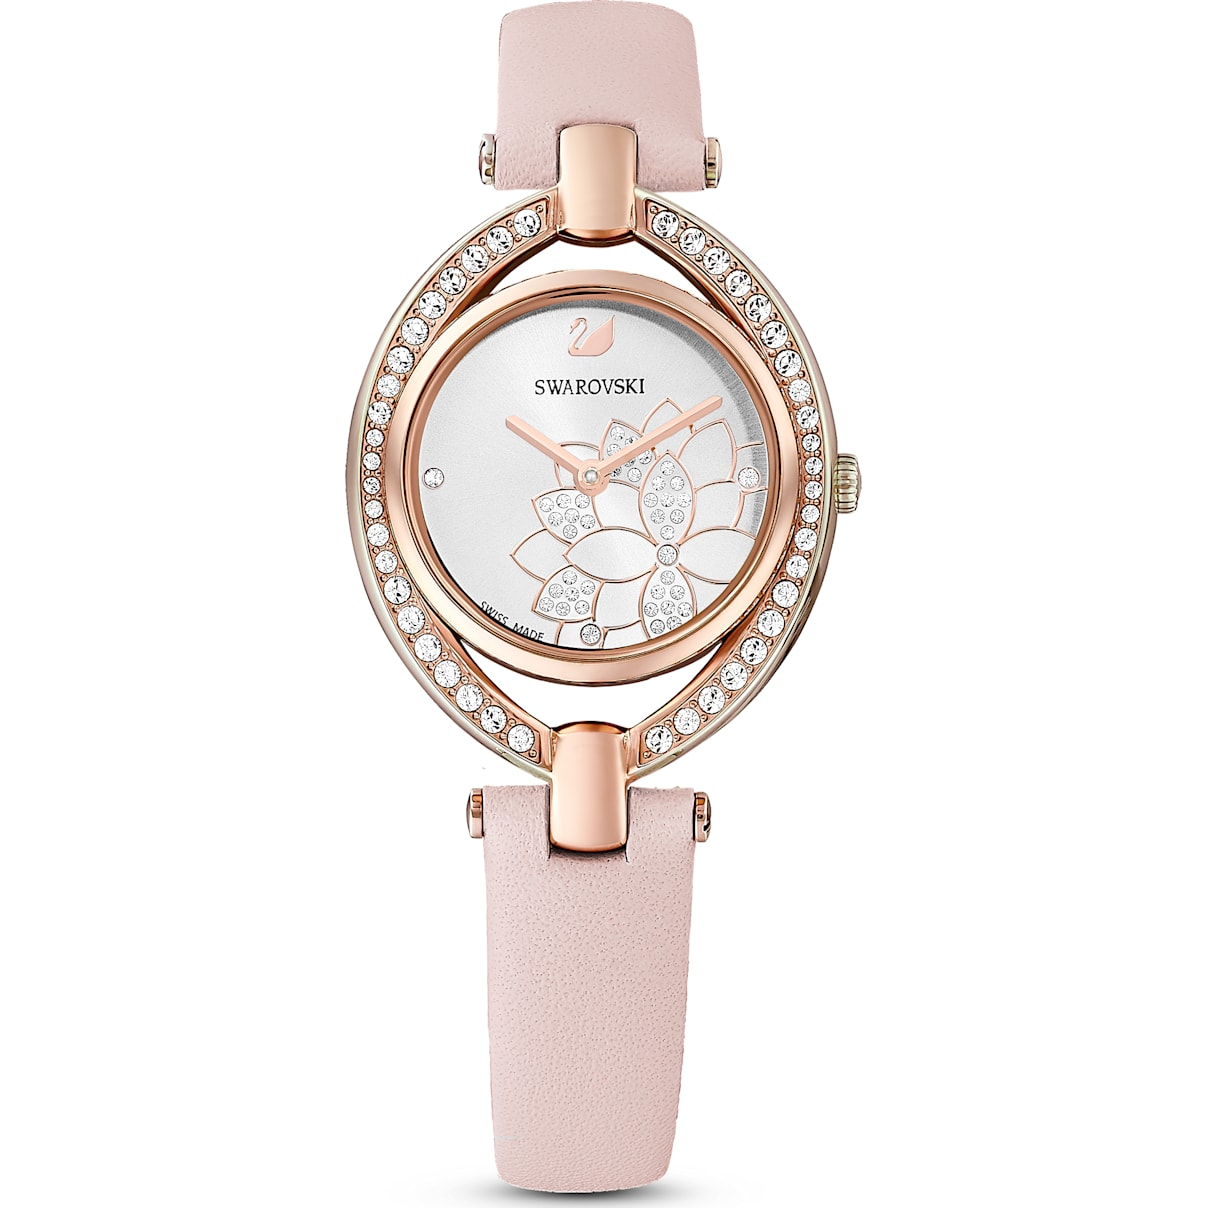 Swarovski Stella Watch, Leather Strap, Pink, Rose-gold tone PVD